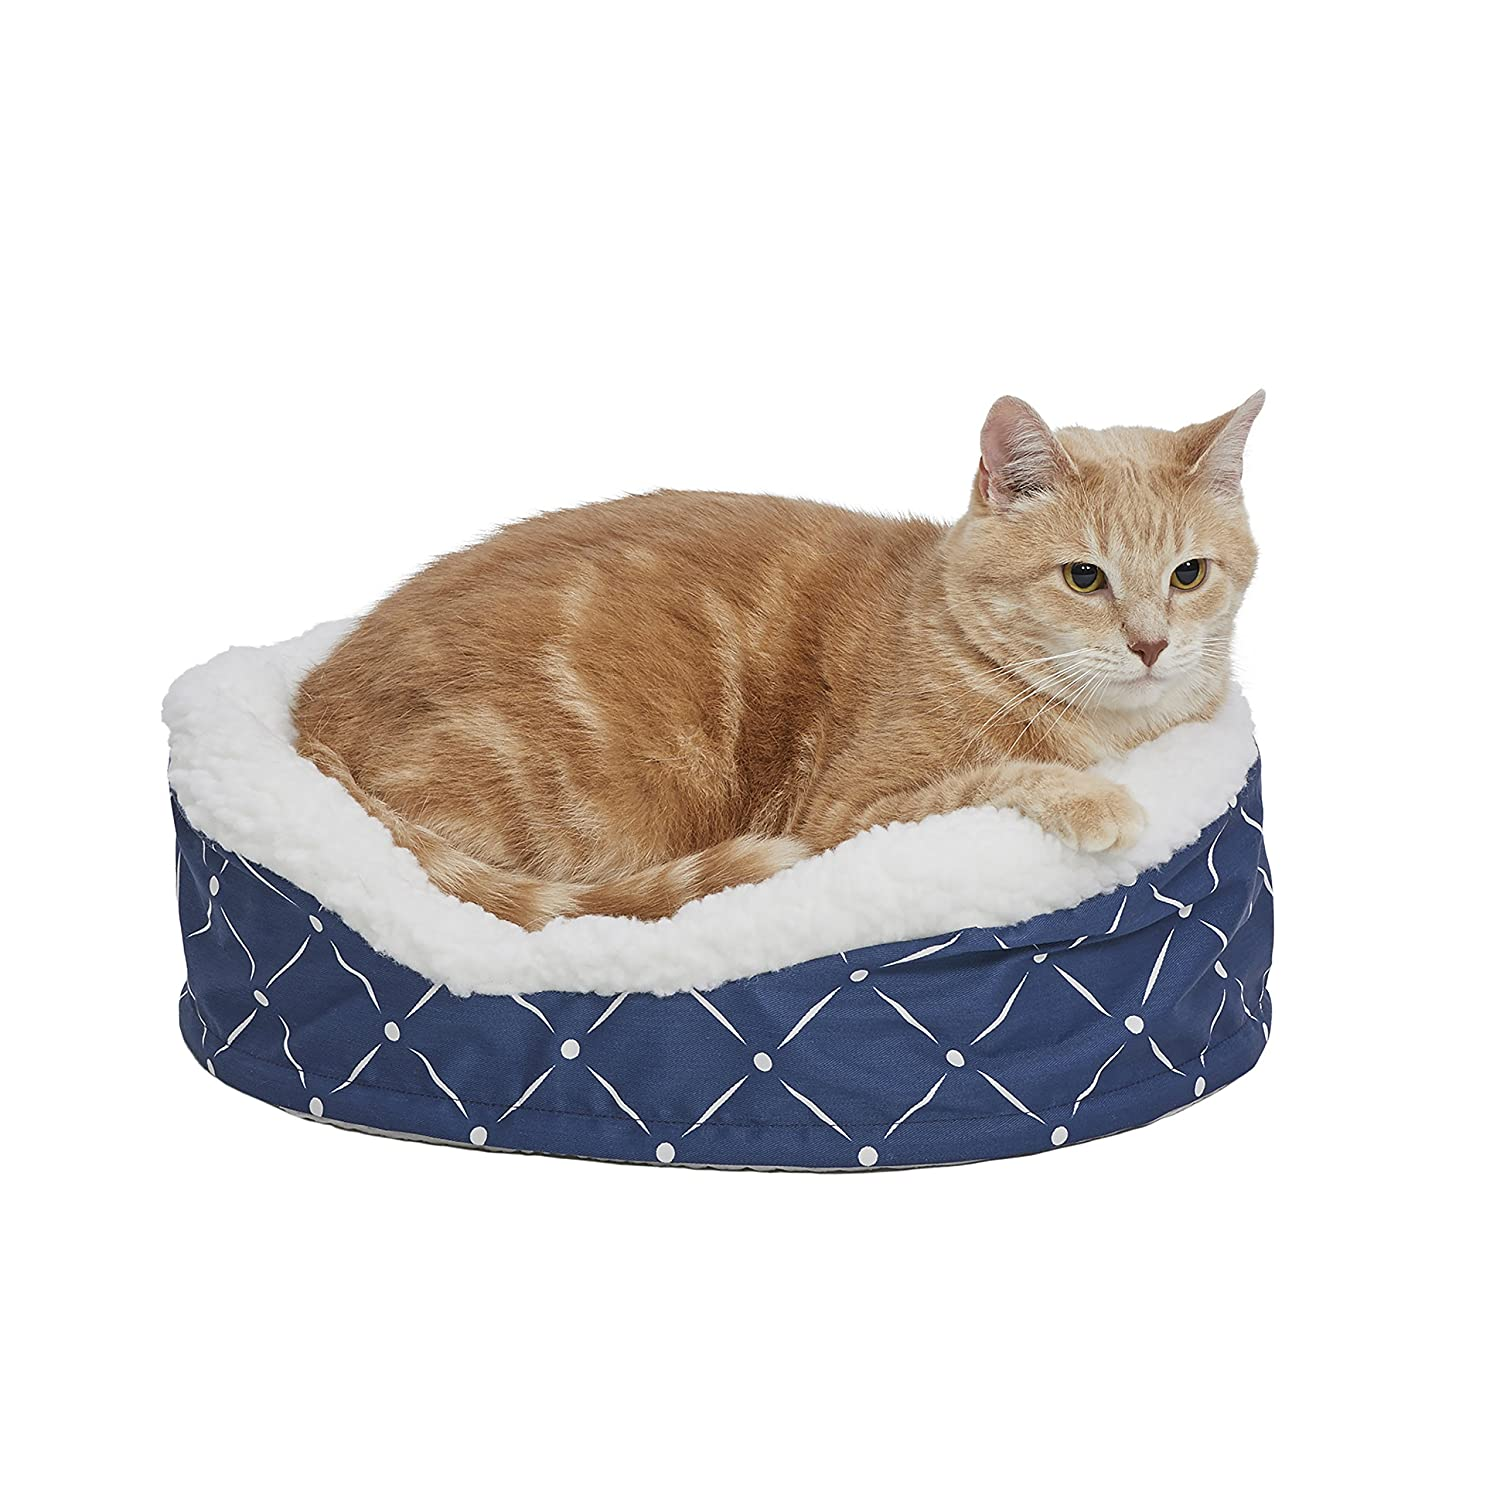 bluee  White Diamond Pattern XSMidwest Homes for Pets CU36MRD Couture Orthopedic Cradle Pet Bed, Mushroom White Diamond Pattern, Intermediate